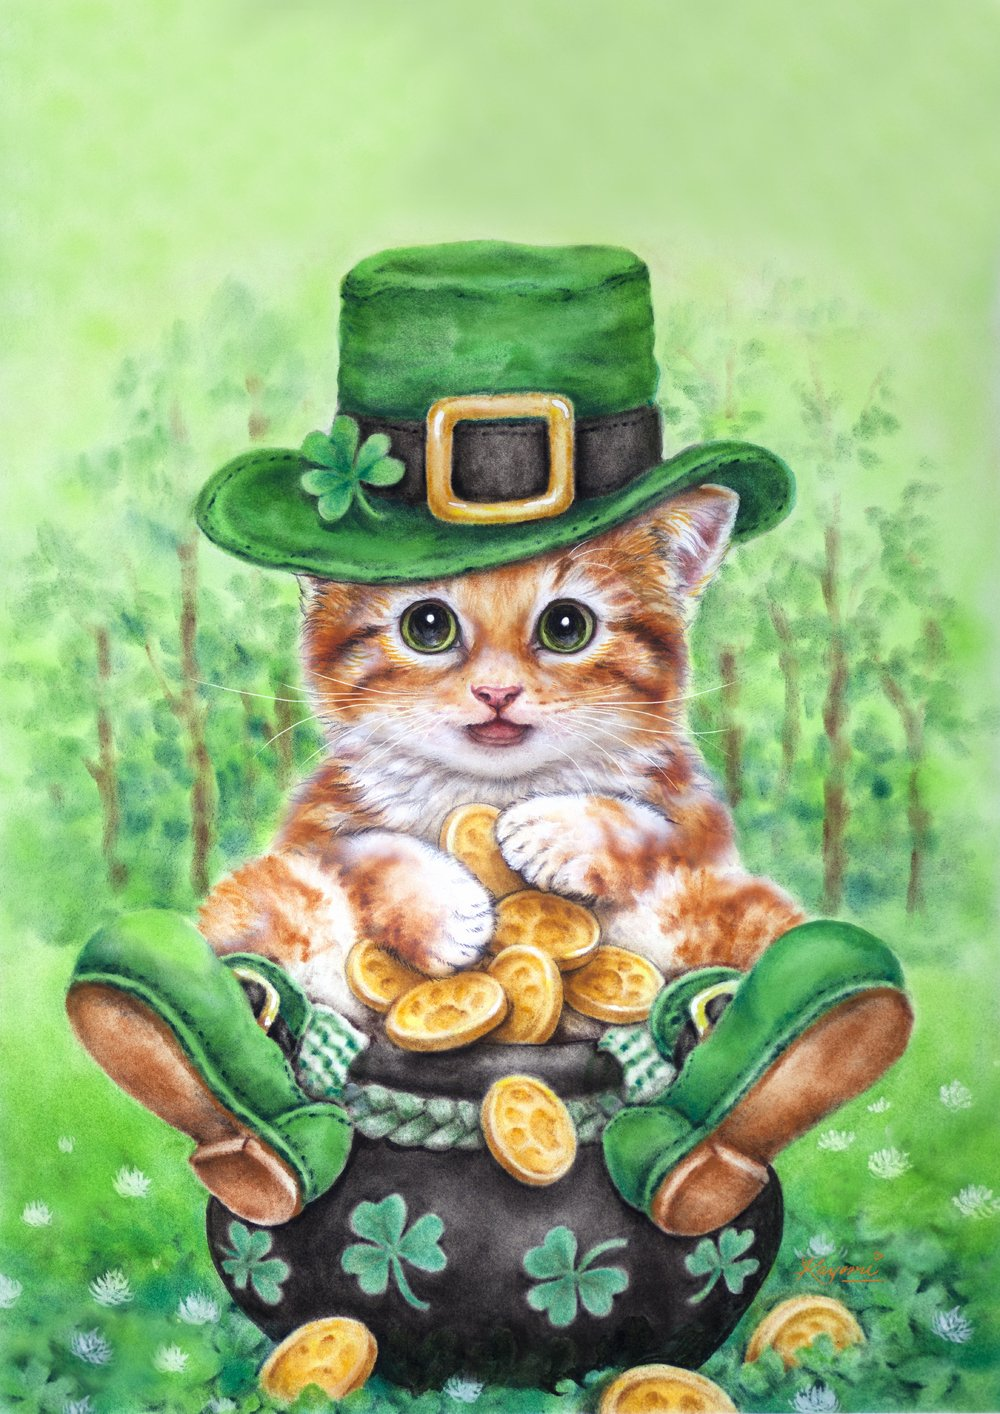 Toland Home Garden Clover Kitty 12.5 x 18 Inch Decorative Cute Shamrock Tabby Leprechaun Cat St Patrick's Day Garden Flag